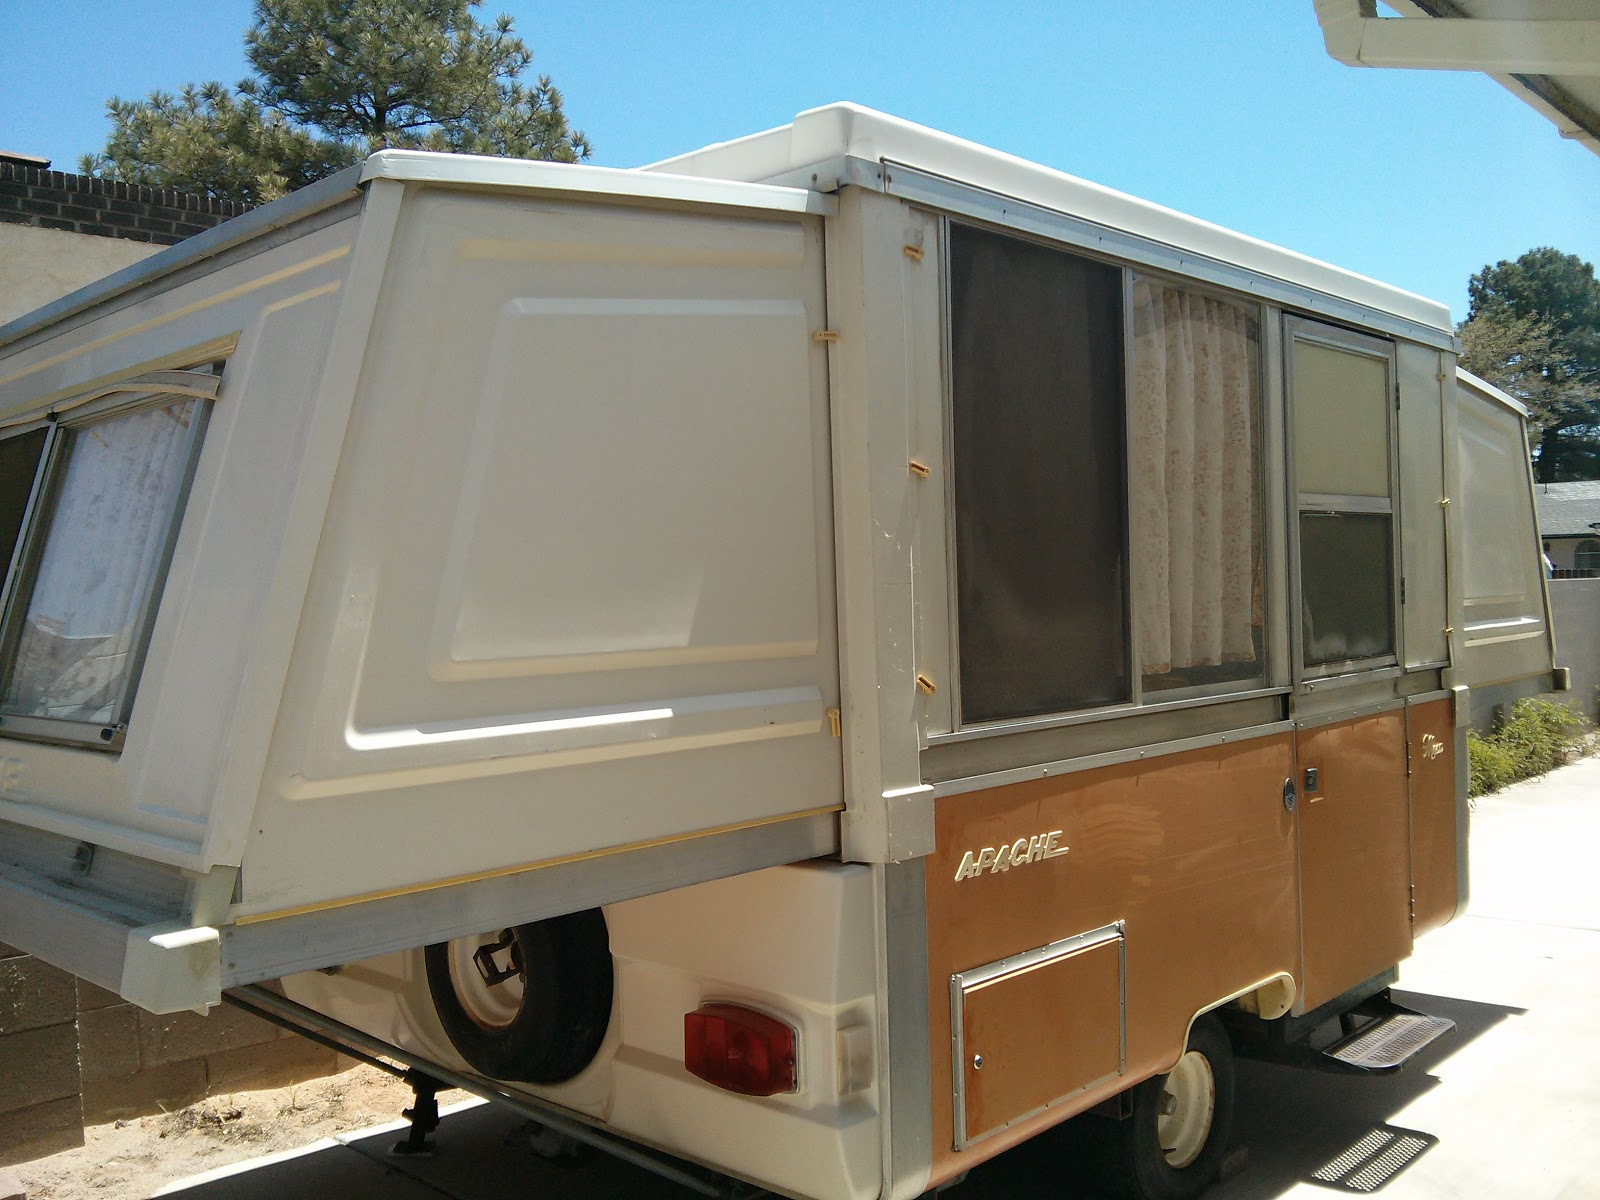 Our new project - an Apache Mesa camper from 1976